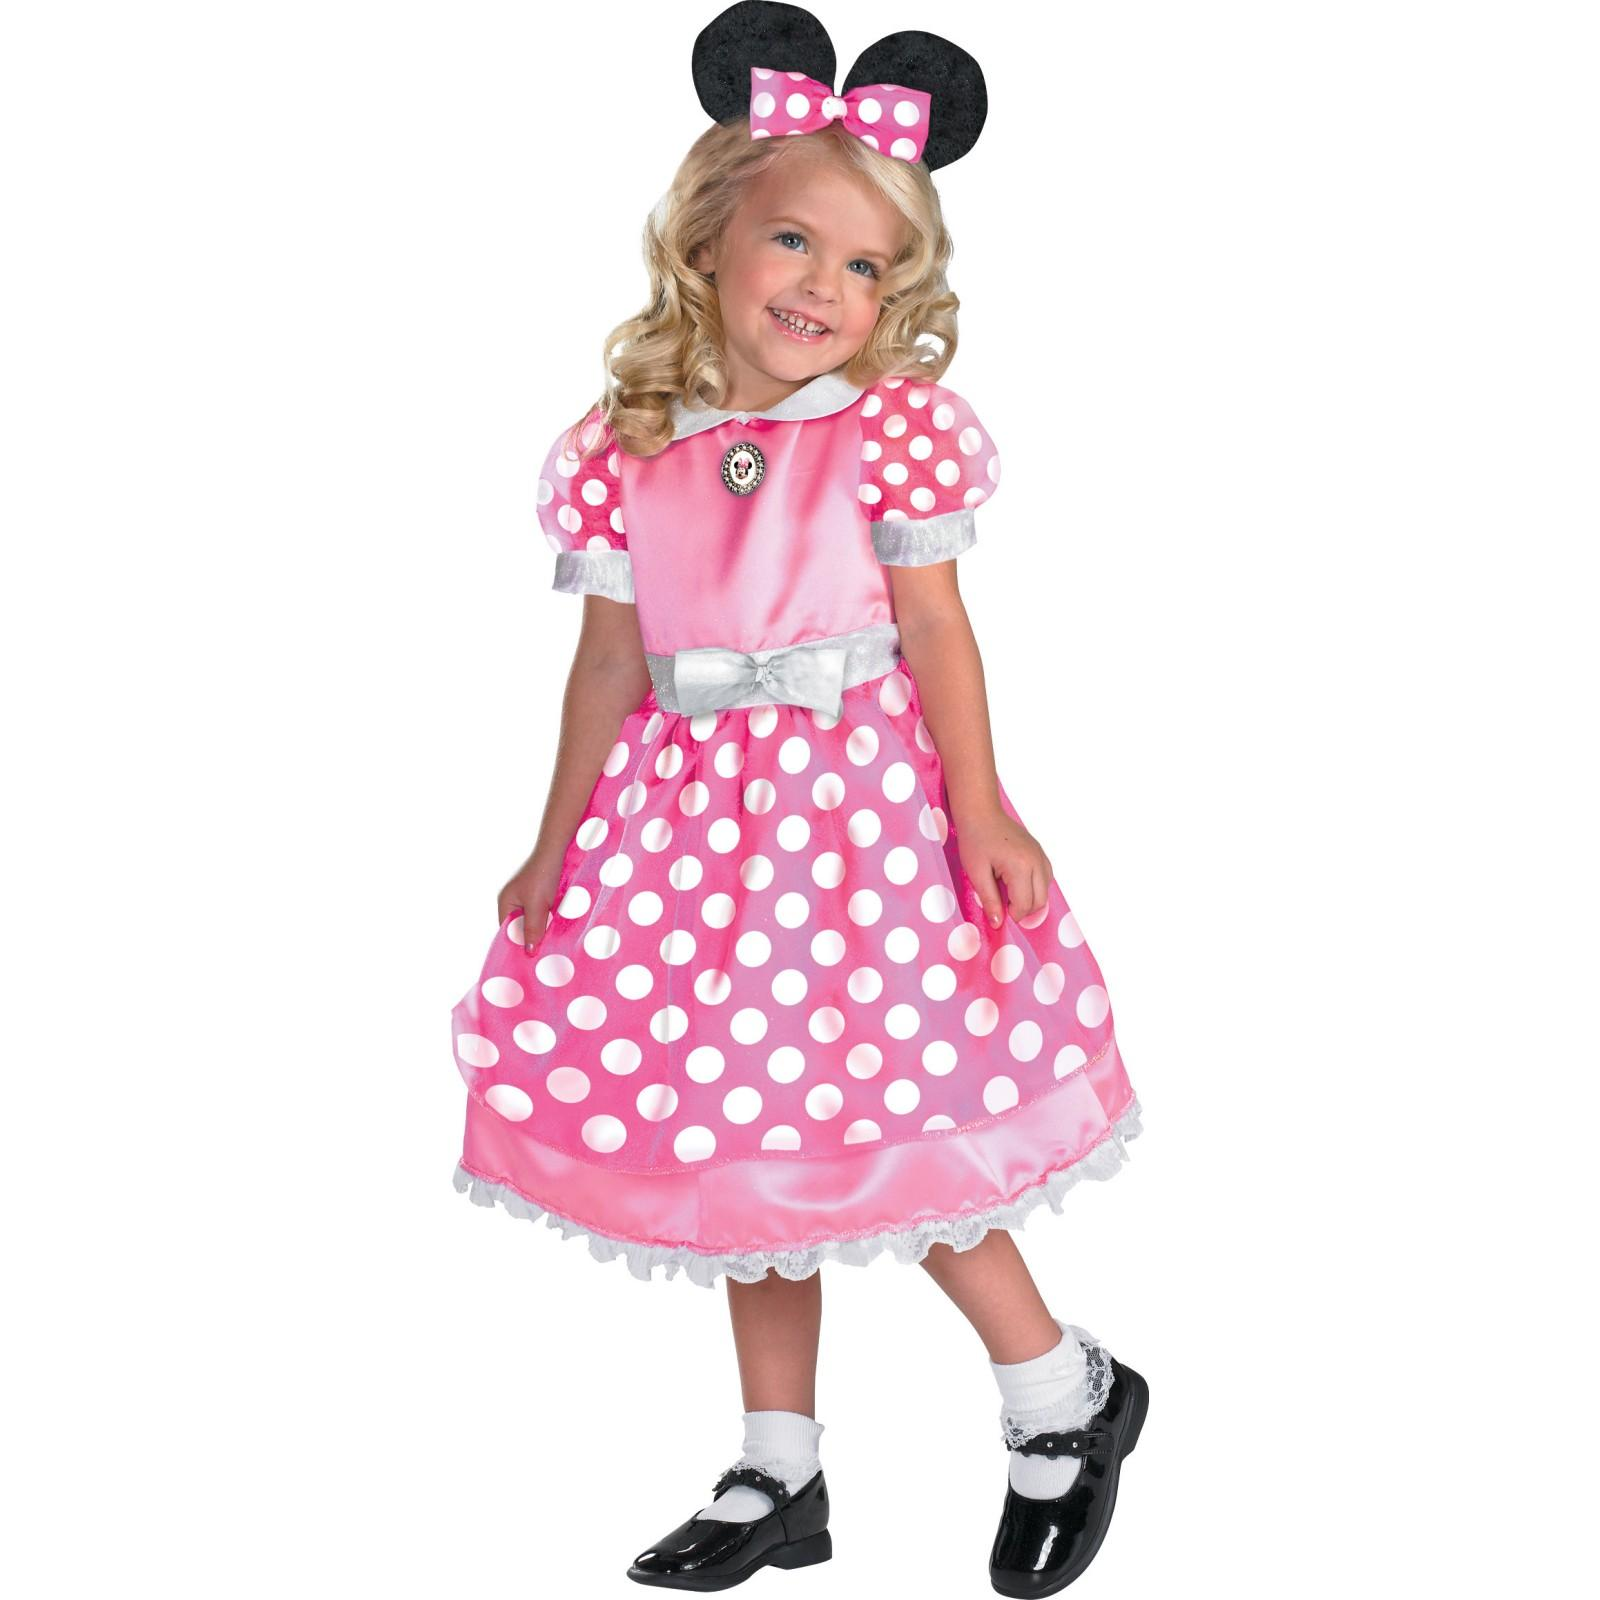 Minnie Mouse Outfits for Toddlers birthday